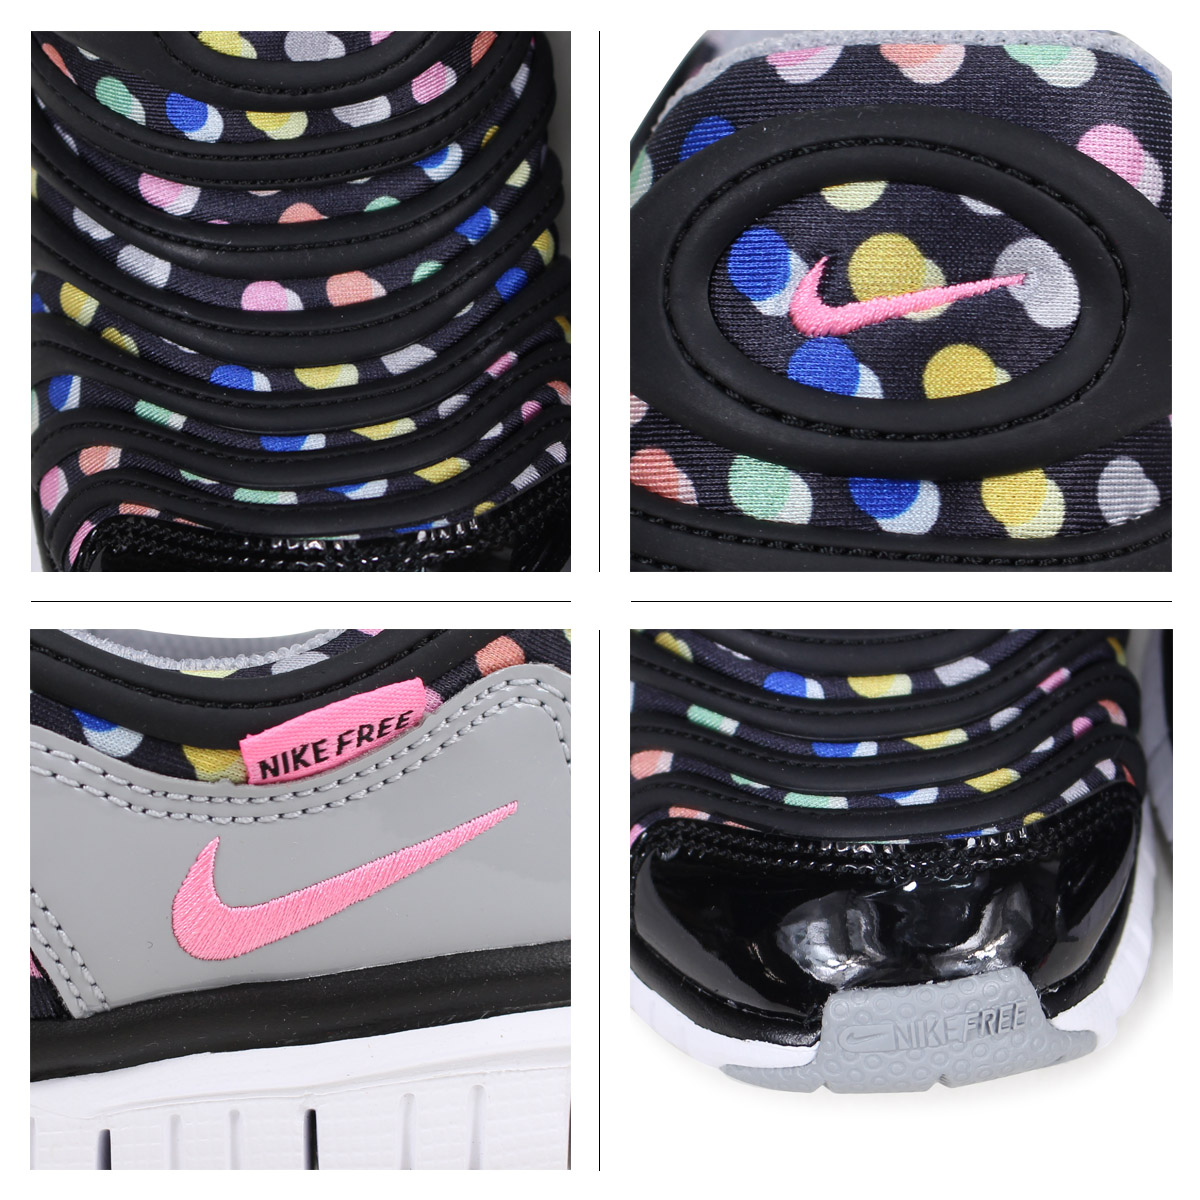 sneak online shop nike nike dynamo free kids sneakers dynamo free print ps 834 365 003 black. Black Bedroom Furniture Sets. Home Design Ideas